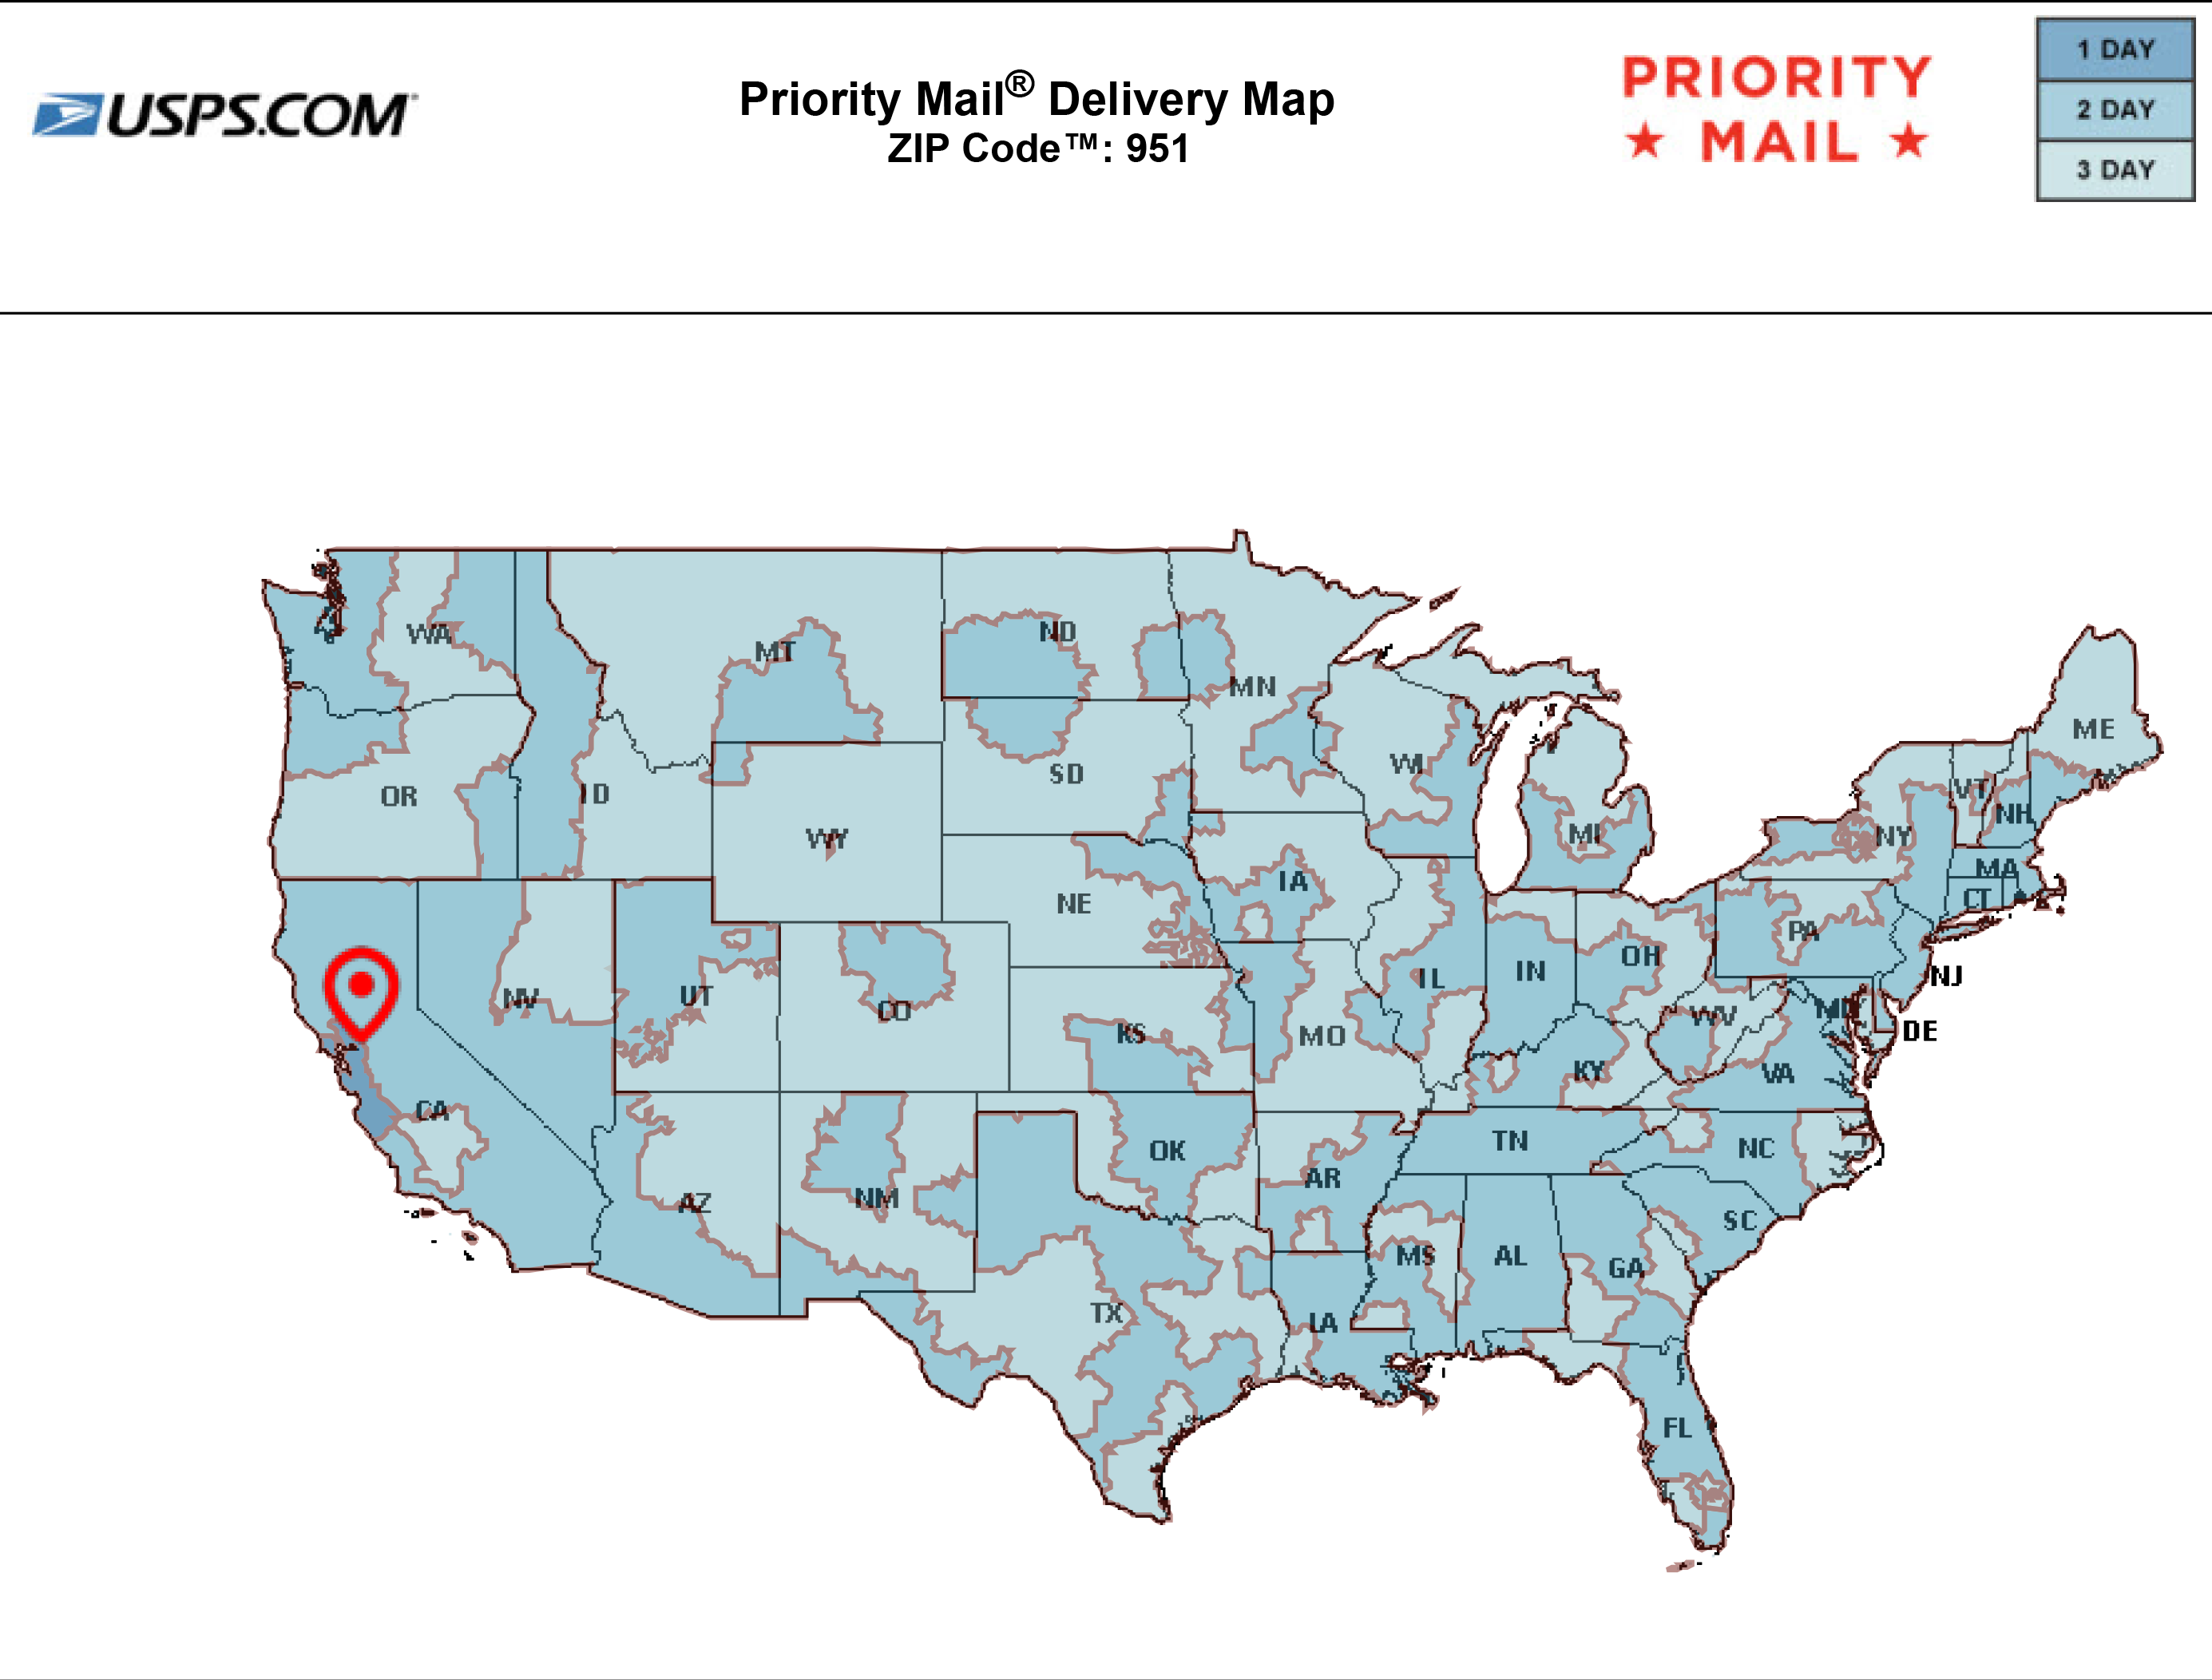 priority-mail-delivery-map-95131.png